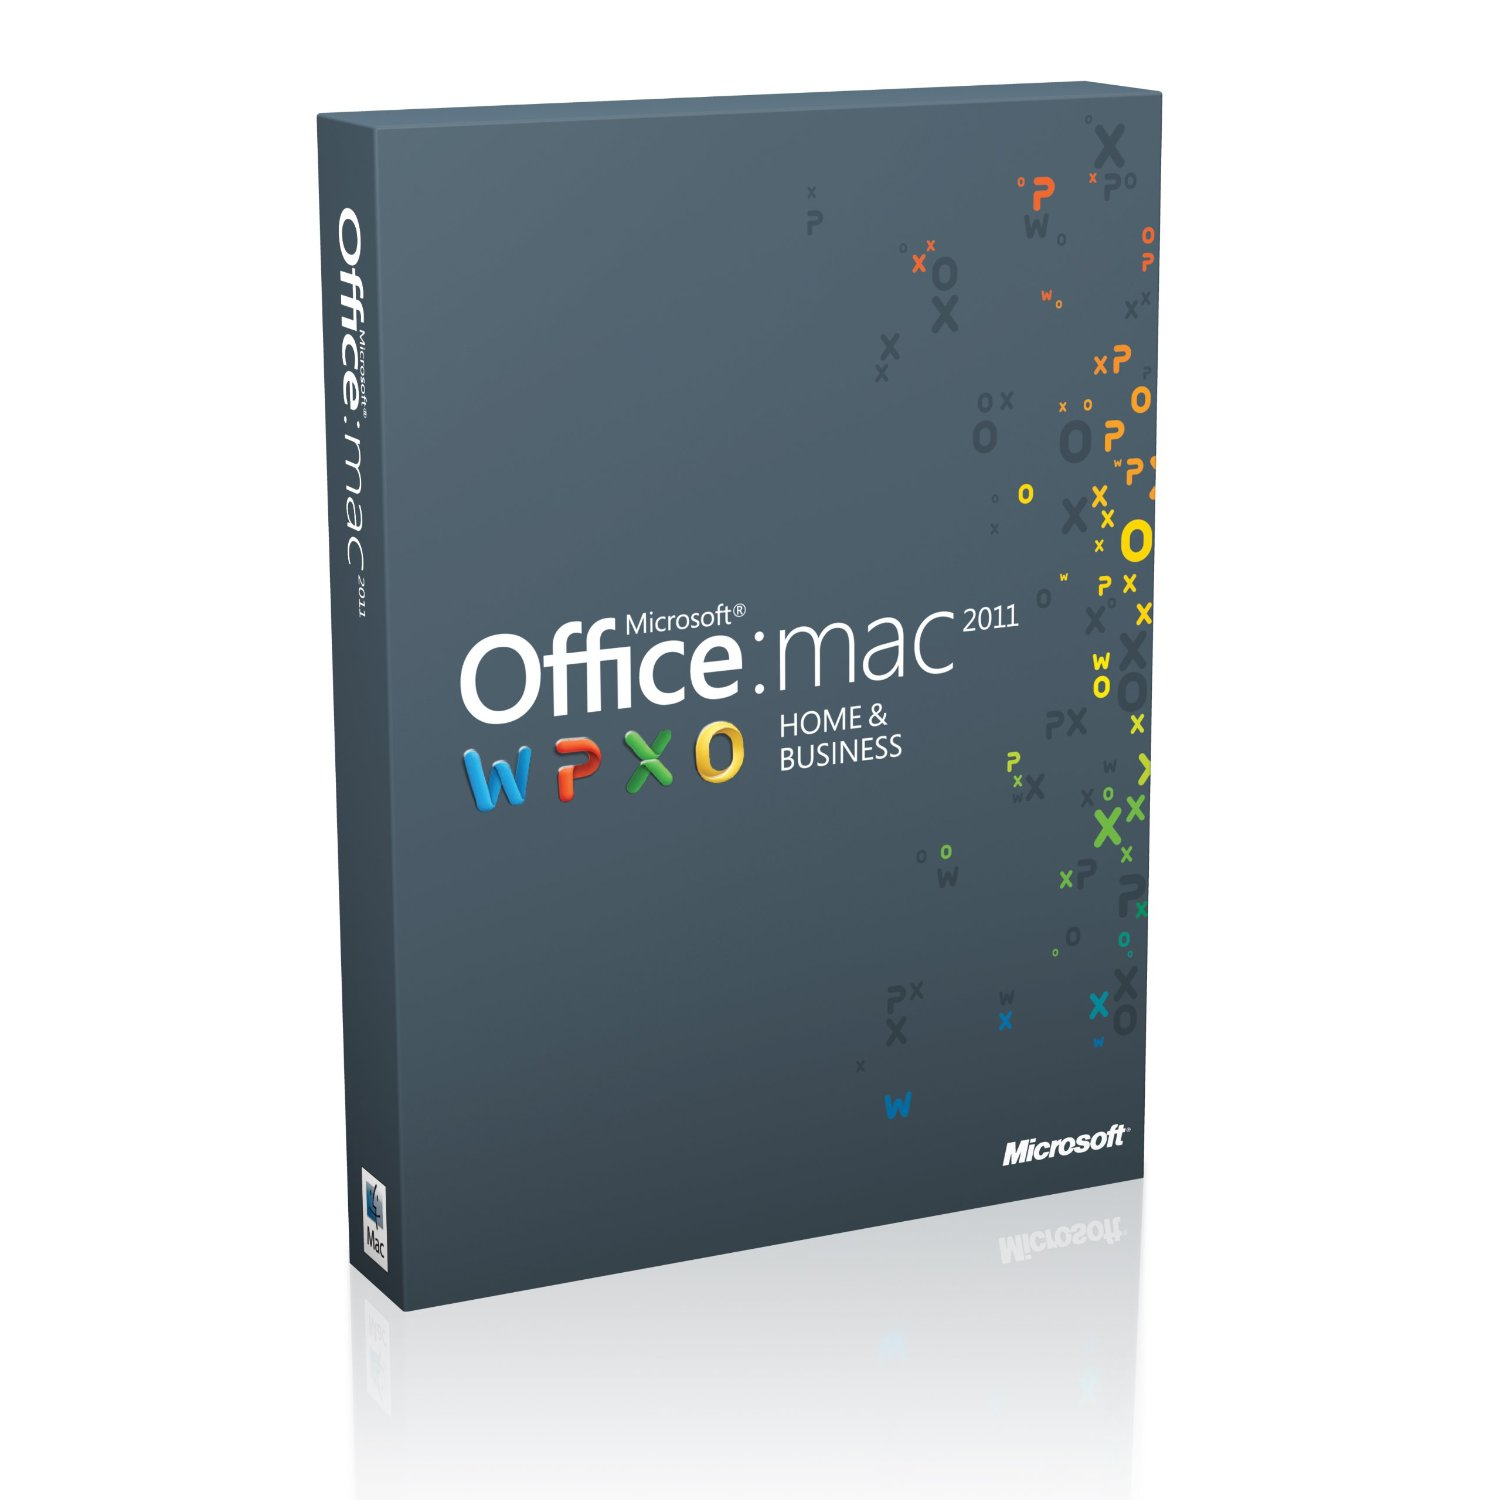 Office for Mac Home & Business 2011 für 229,00 Euro